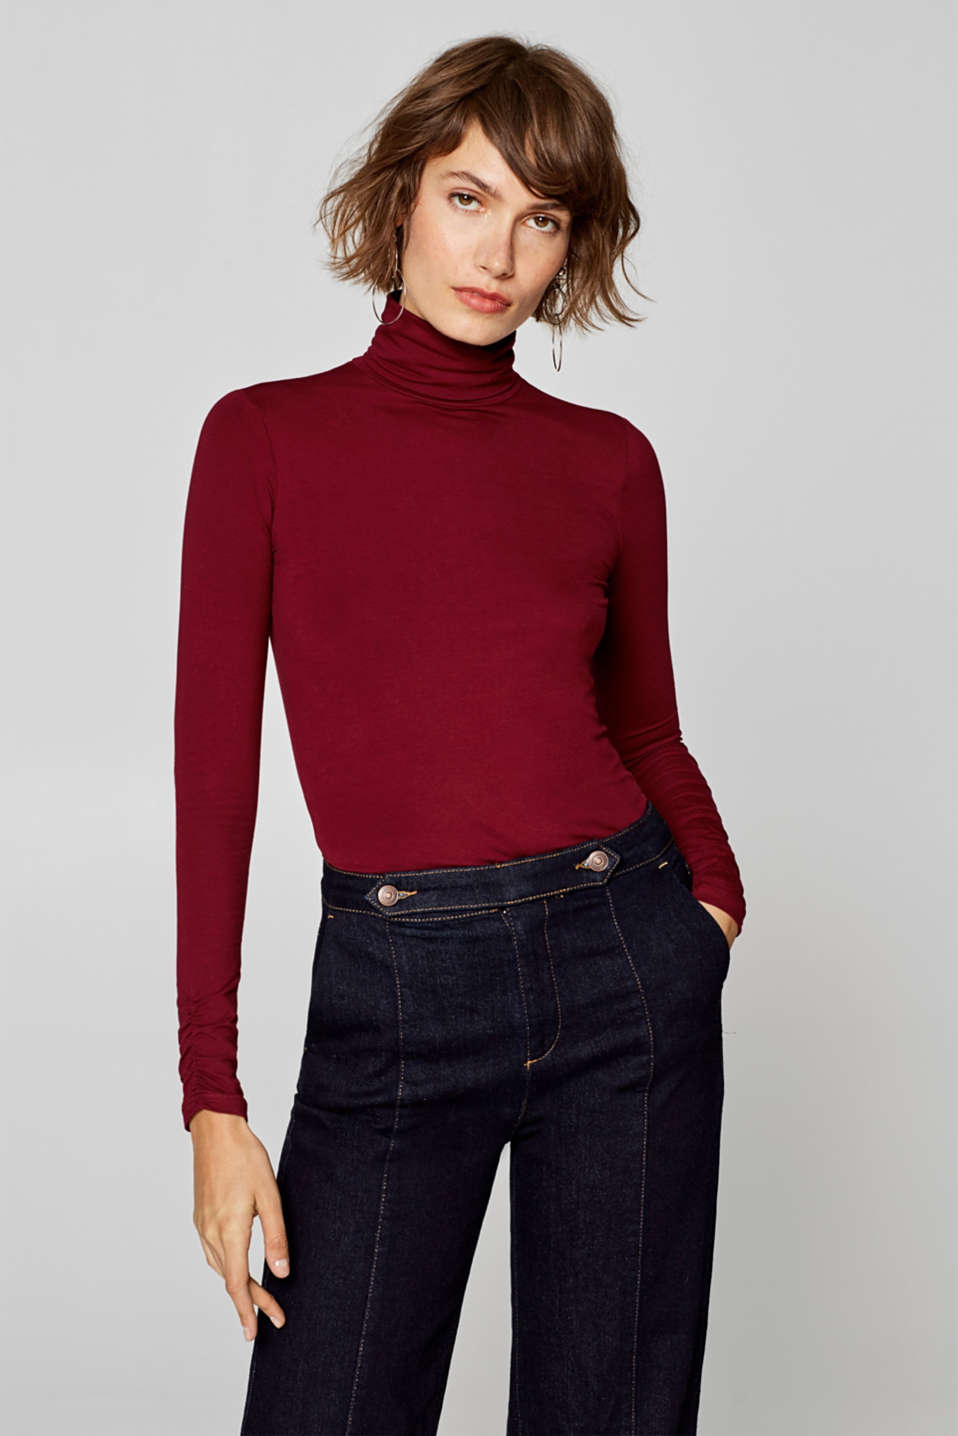 Esprit - Long sleeve top with a polo neck and gathered sleeves